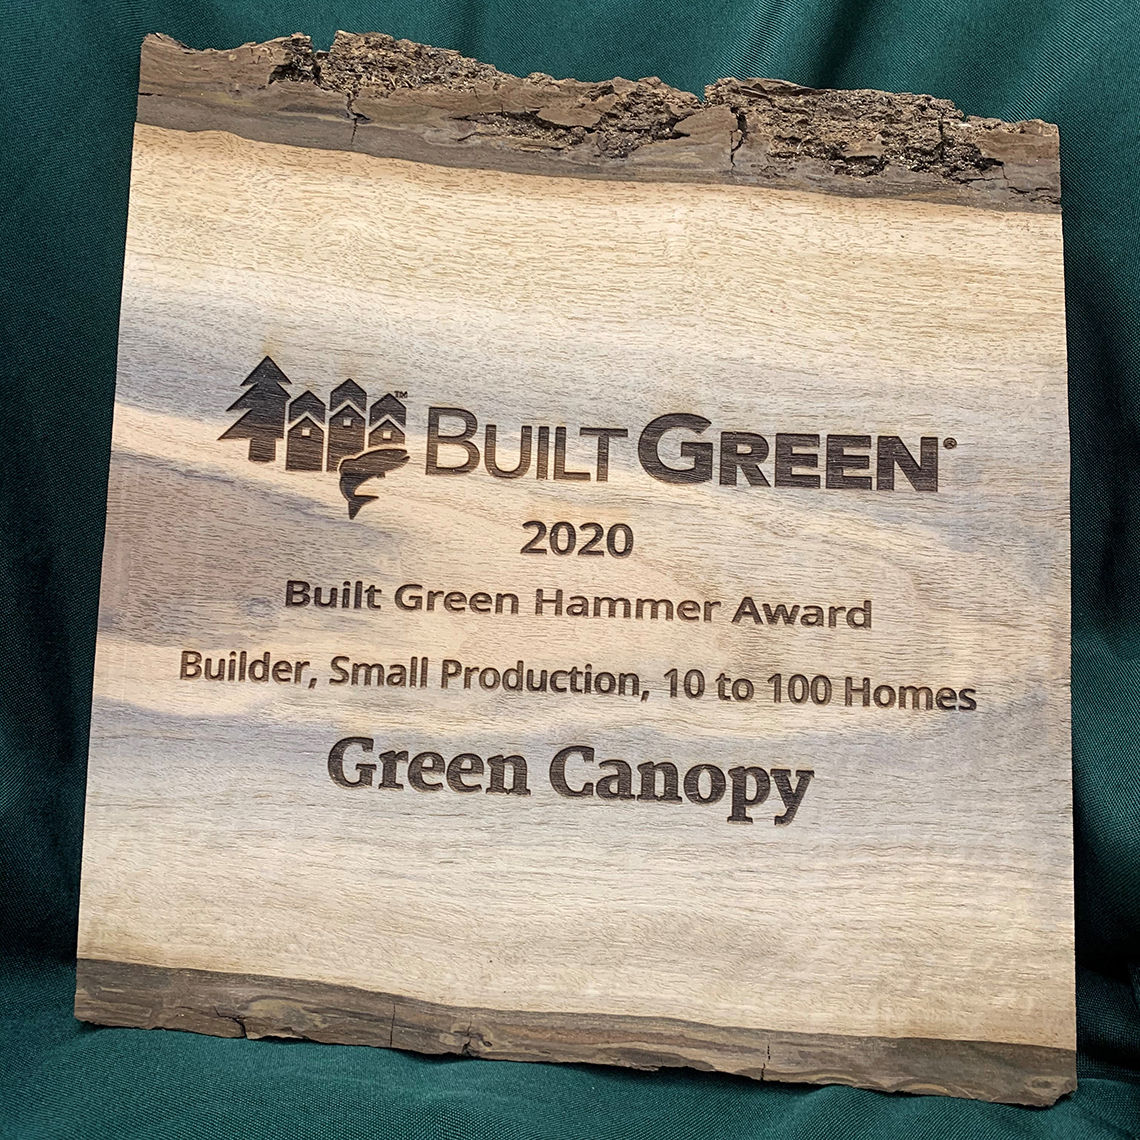 Green Canopy 2020 Built Green Hammer Award plaque